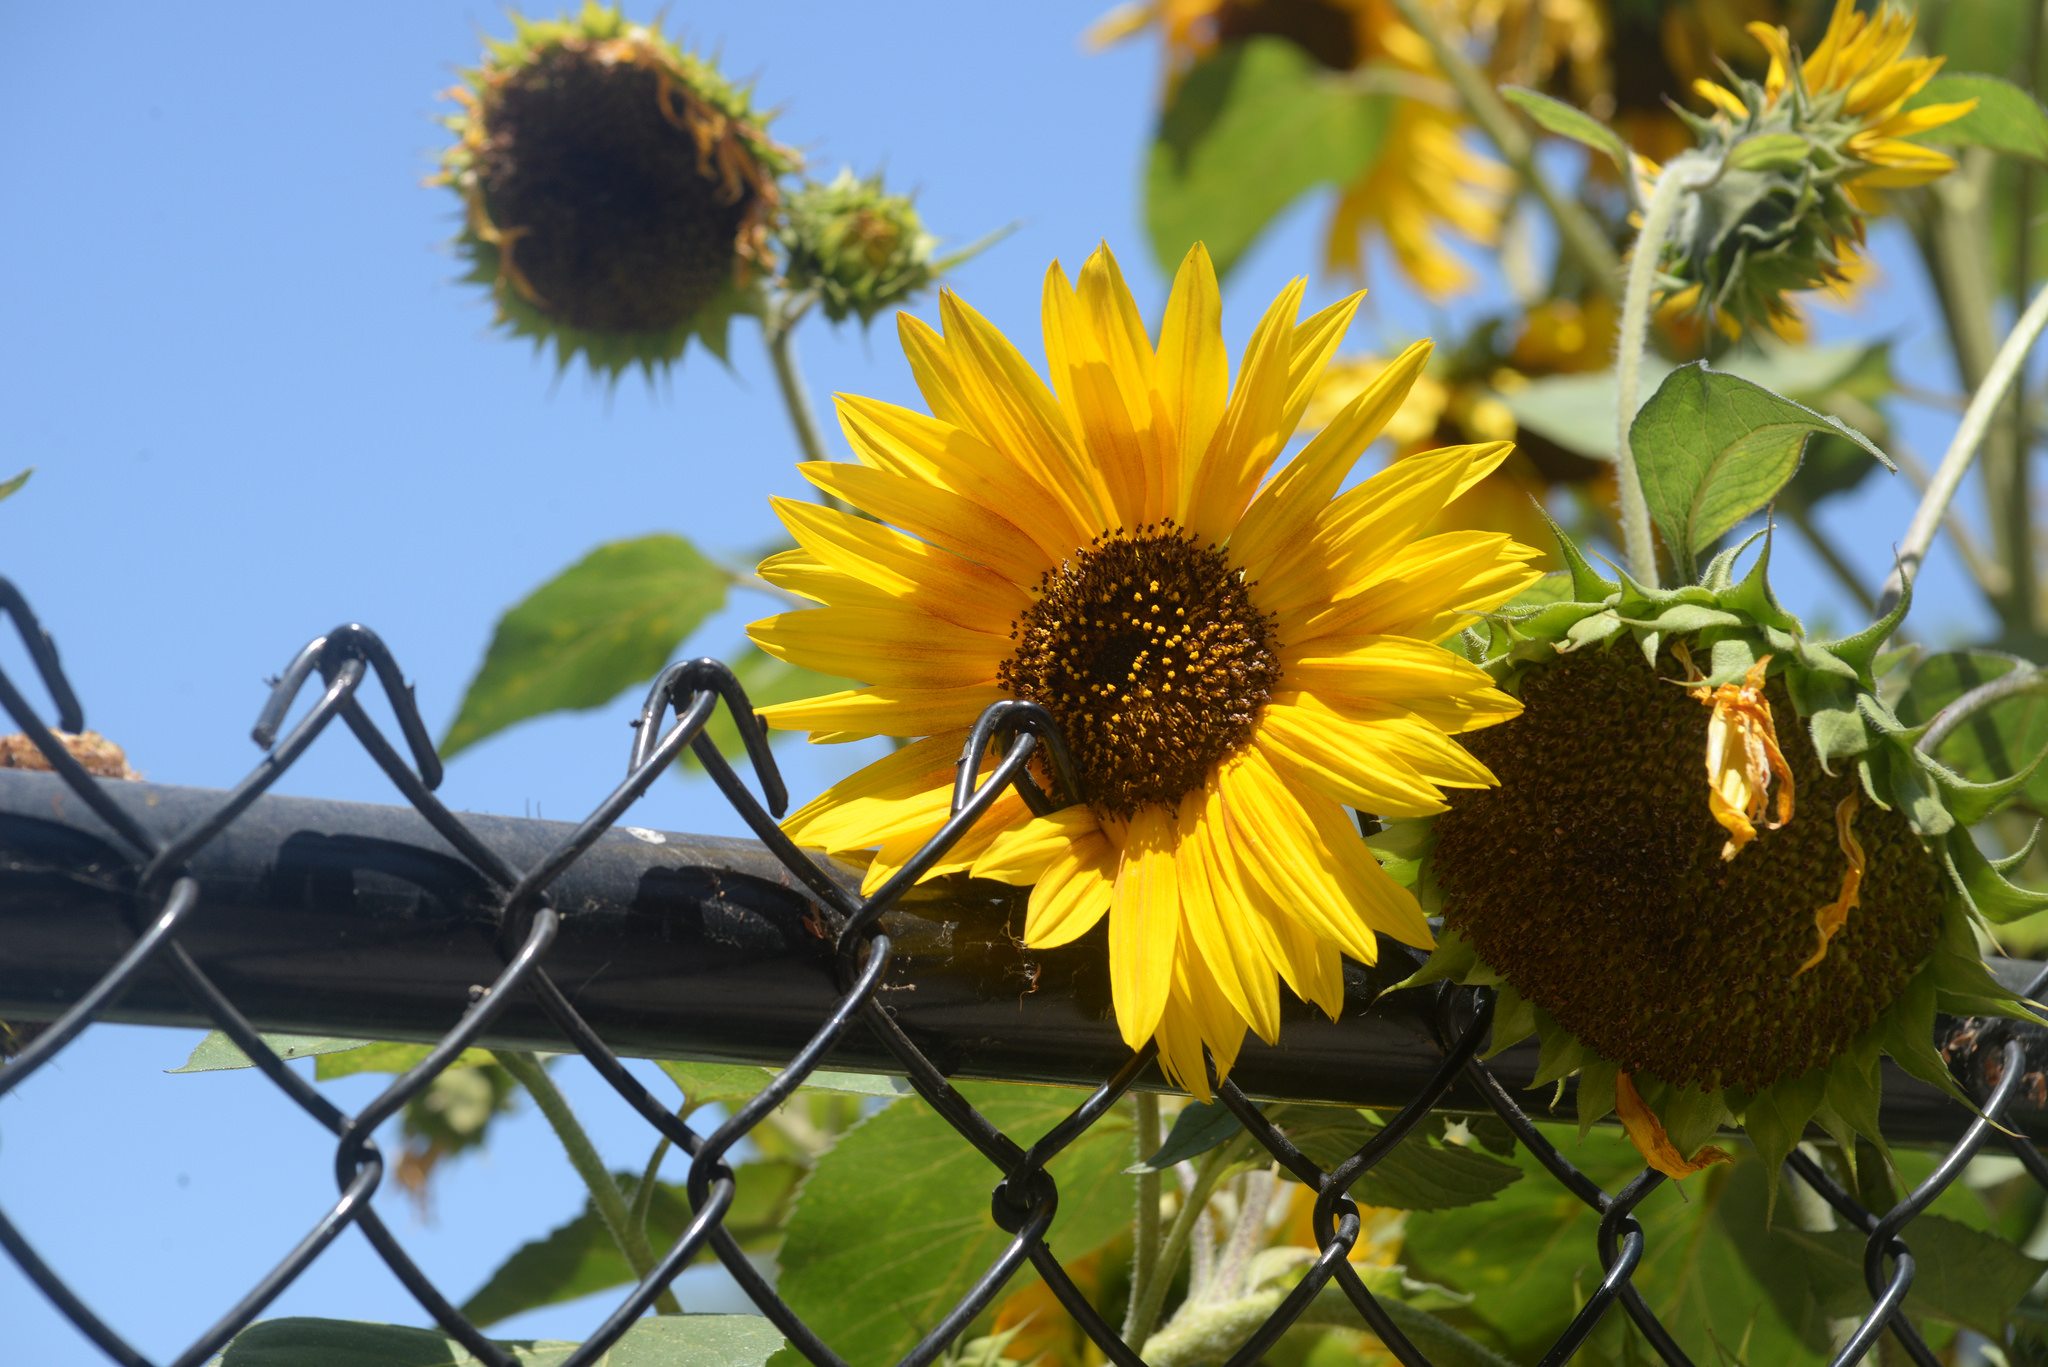 Sunflower in a garden on the San Diego City College campus (Photo Credit: Paul Sullivan)